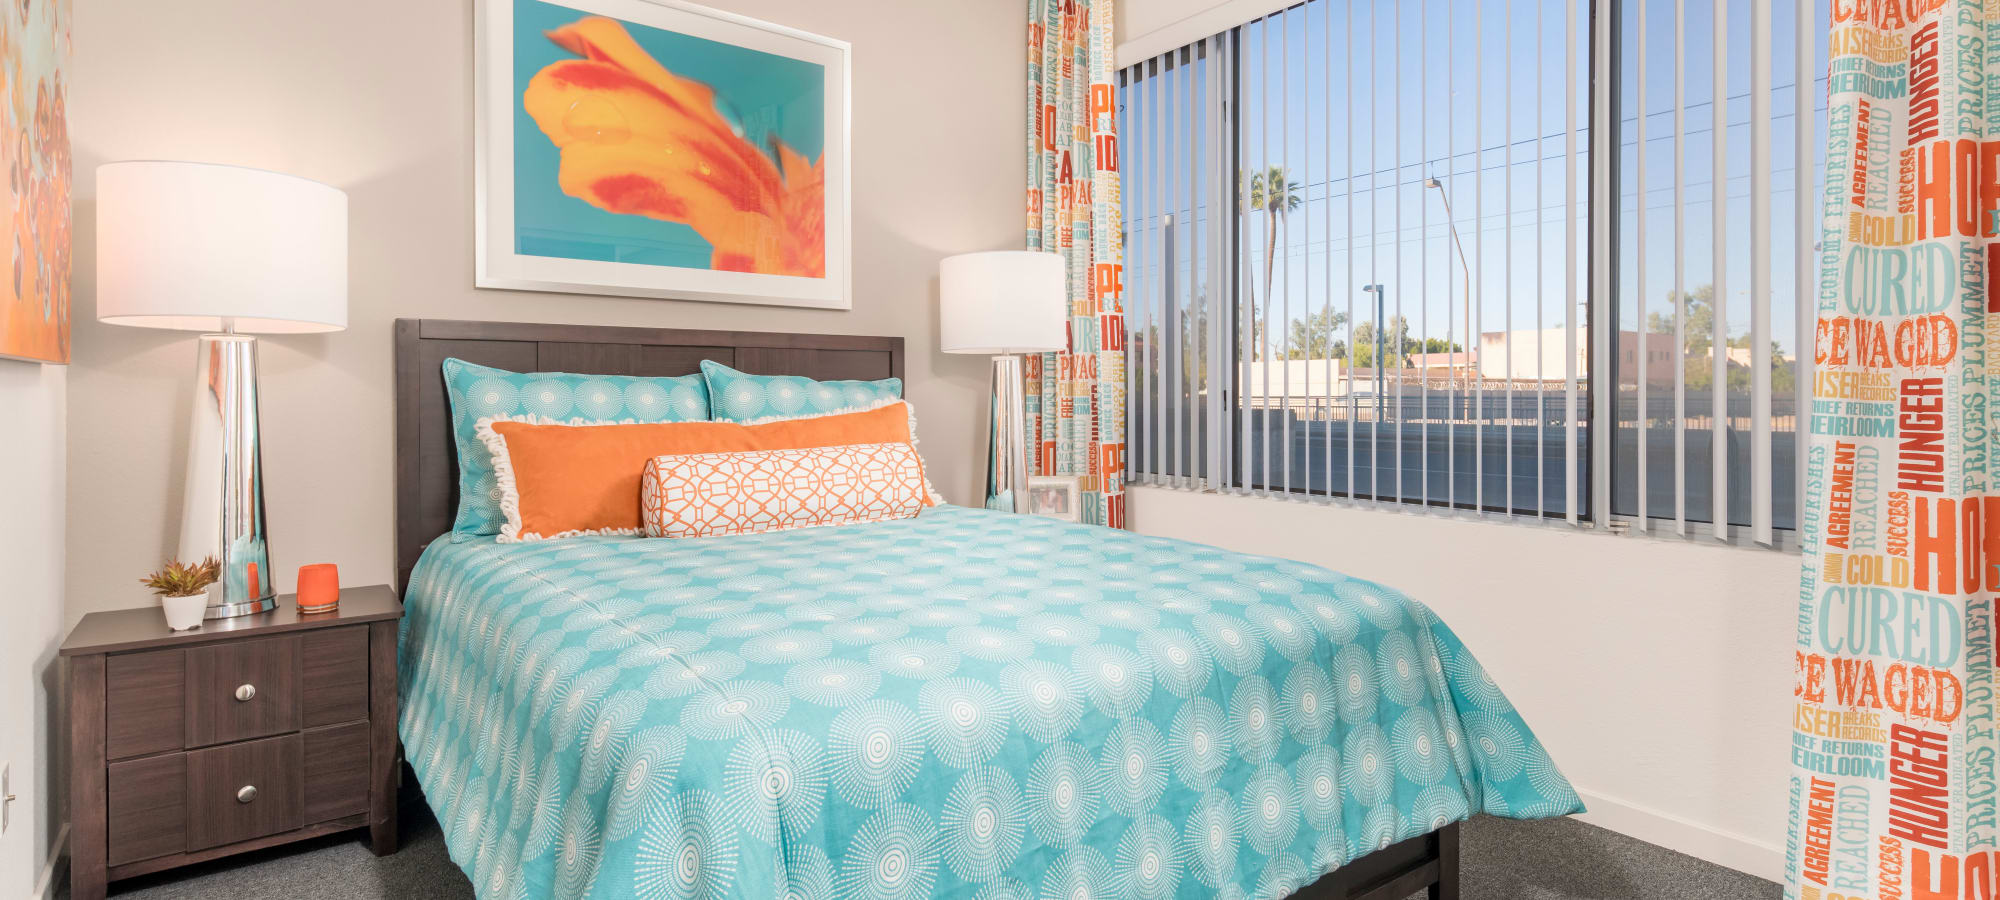 Large contemporary bedroom with window at Tempe Metro in Tempe, Arizona